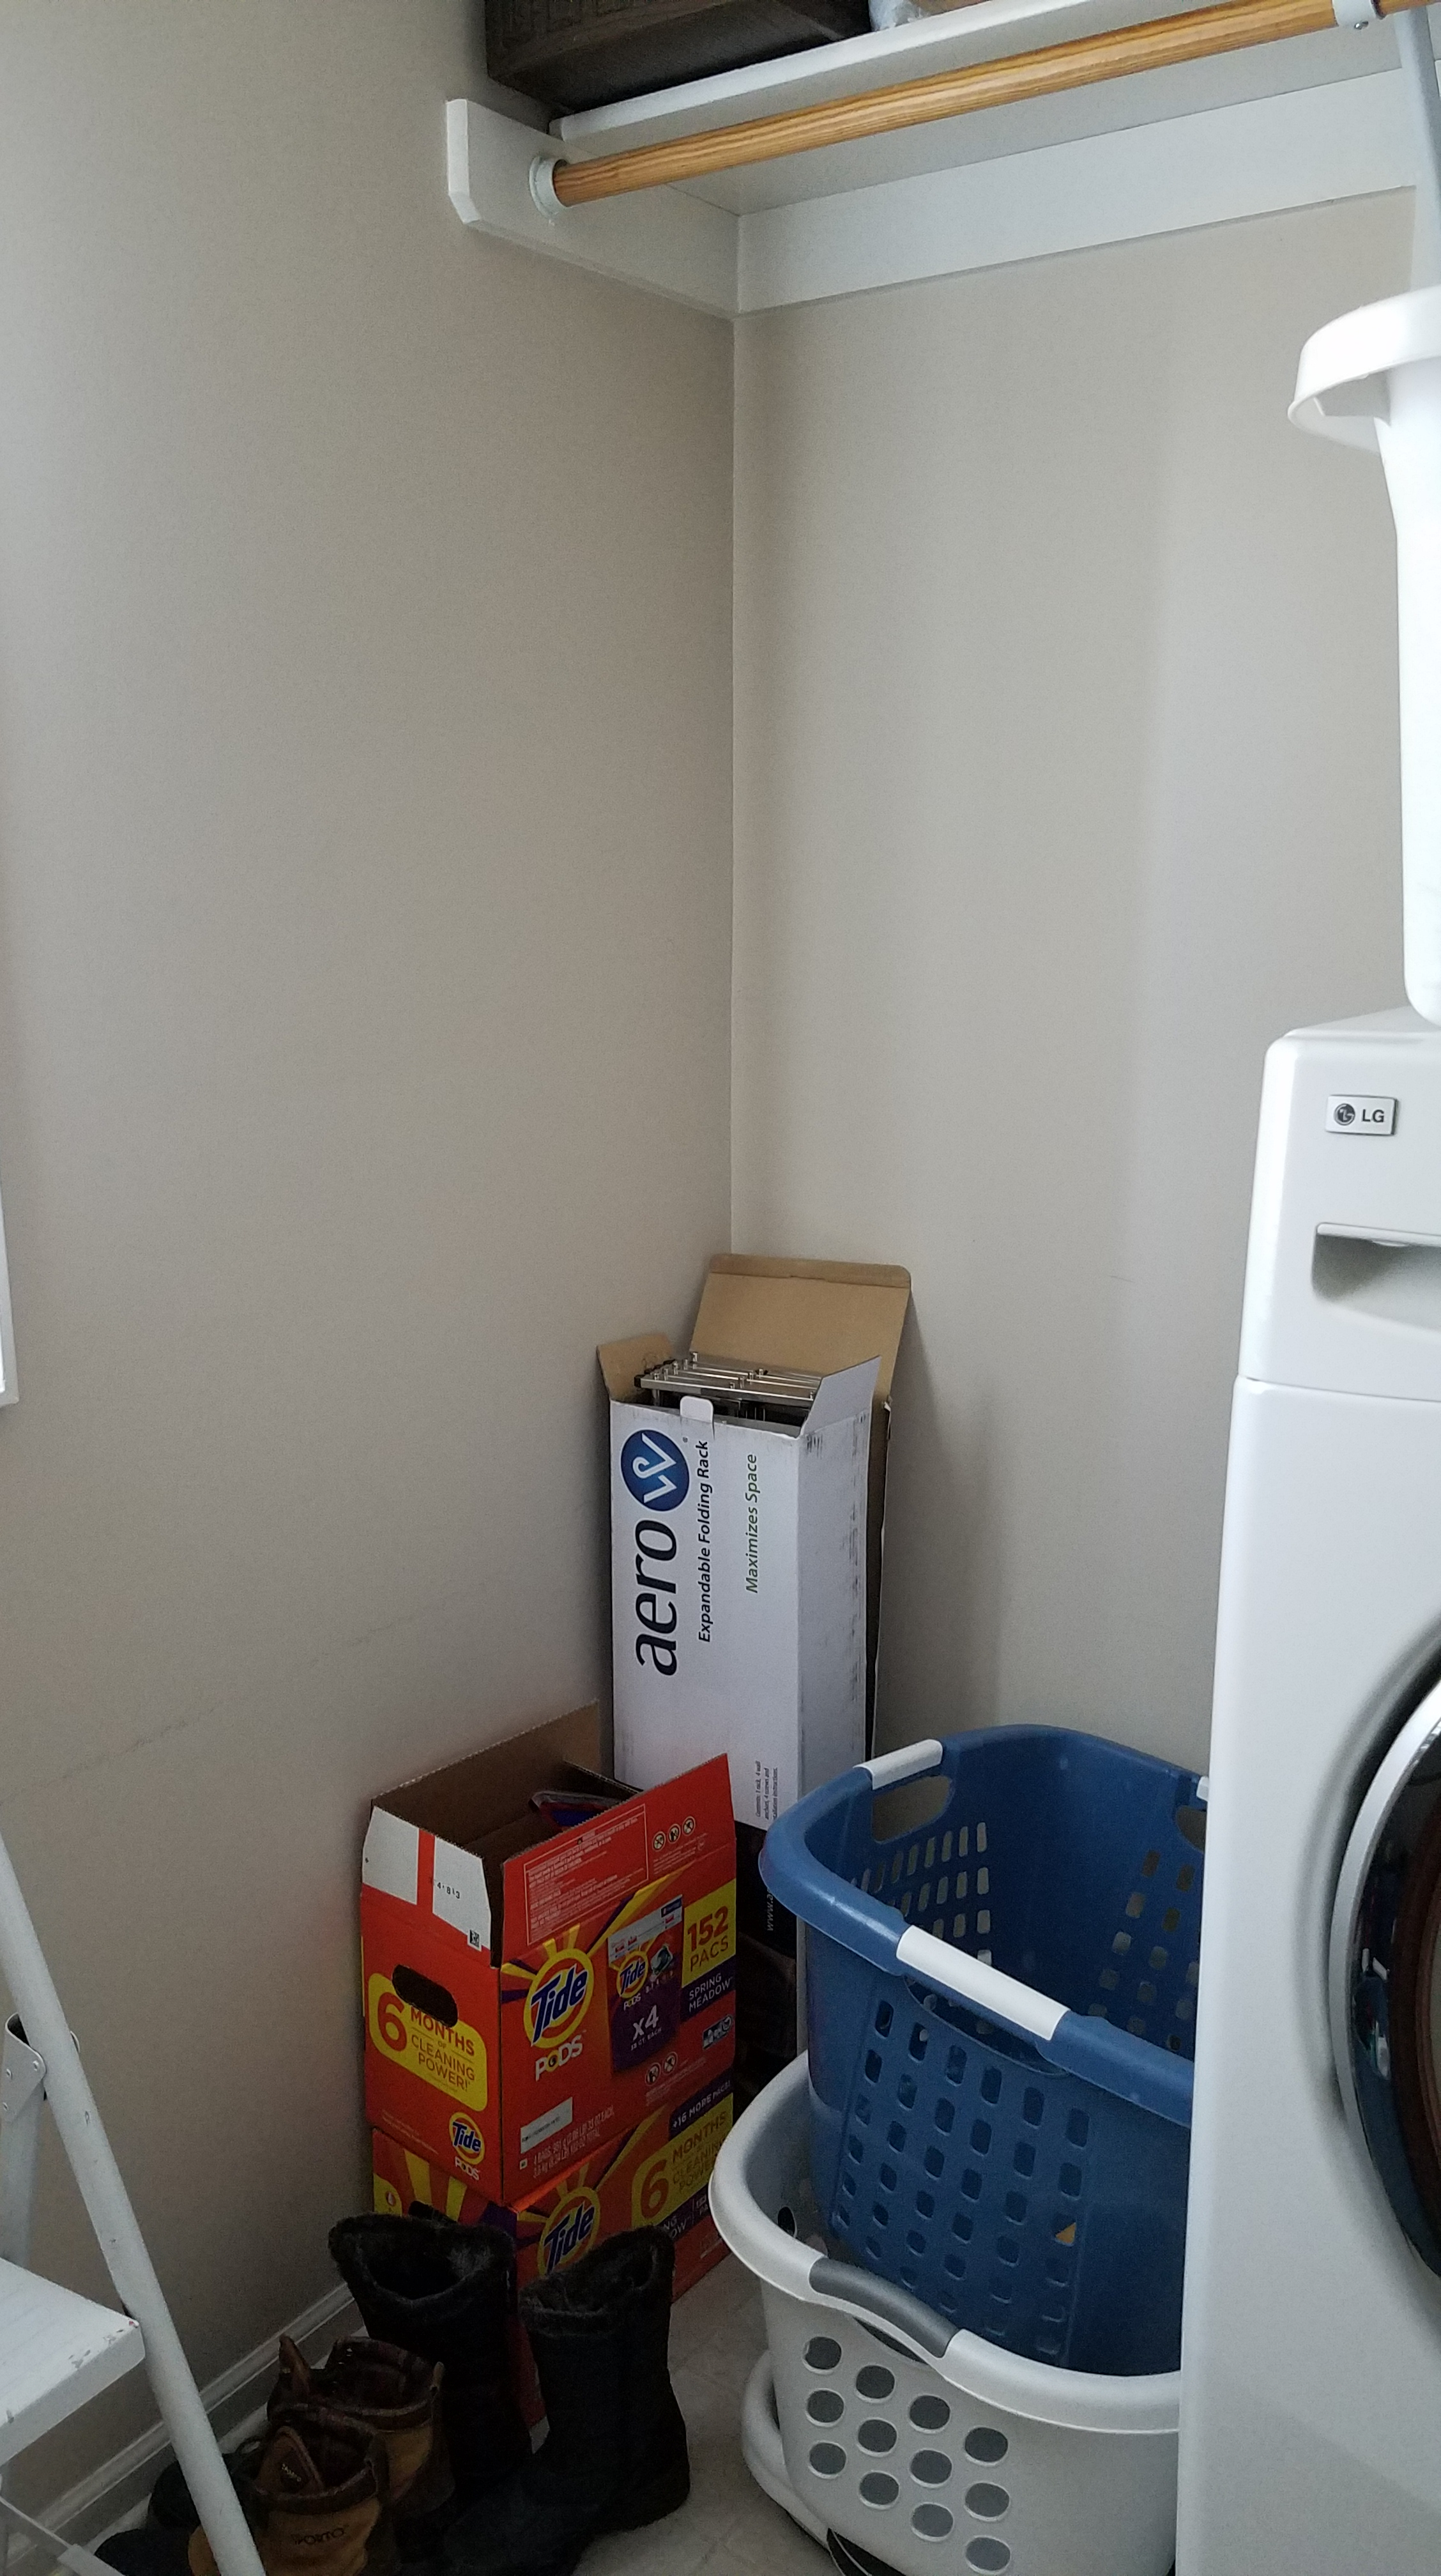 Laundry Room Project - Before Clothes Drying area